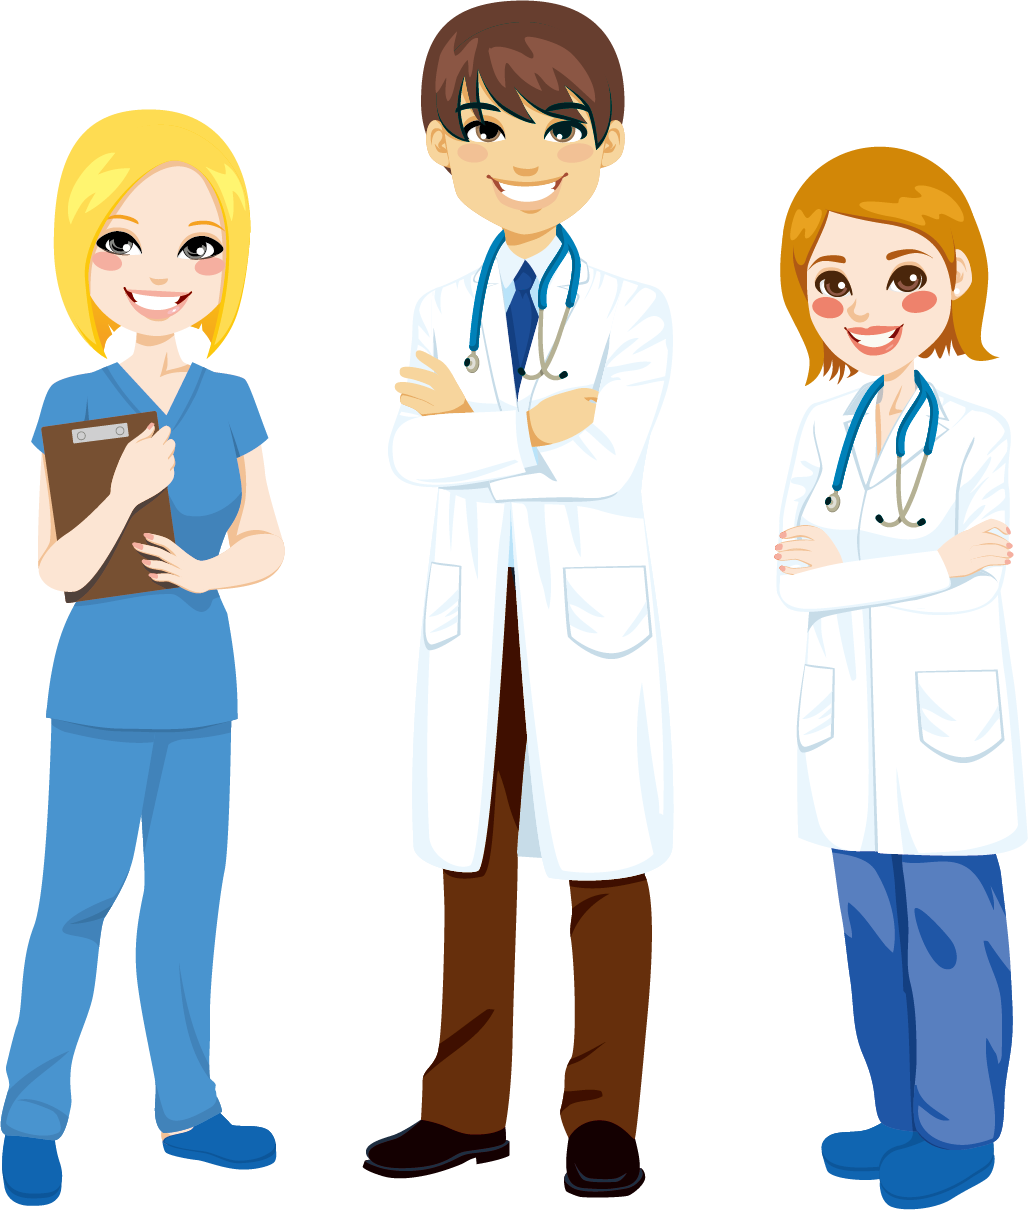 Nursing cartoon stock photography. Patient clipart care worker